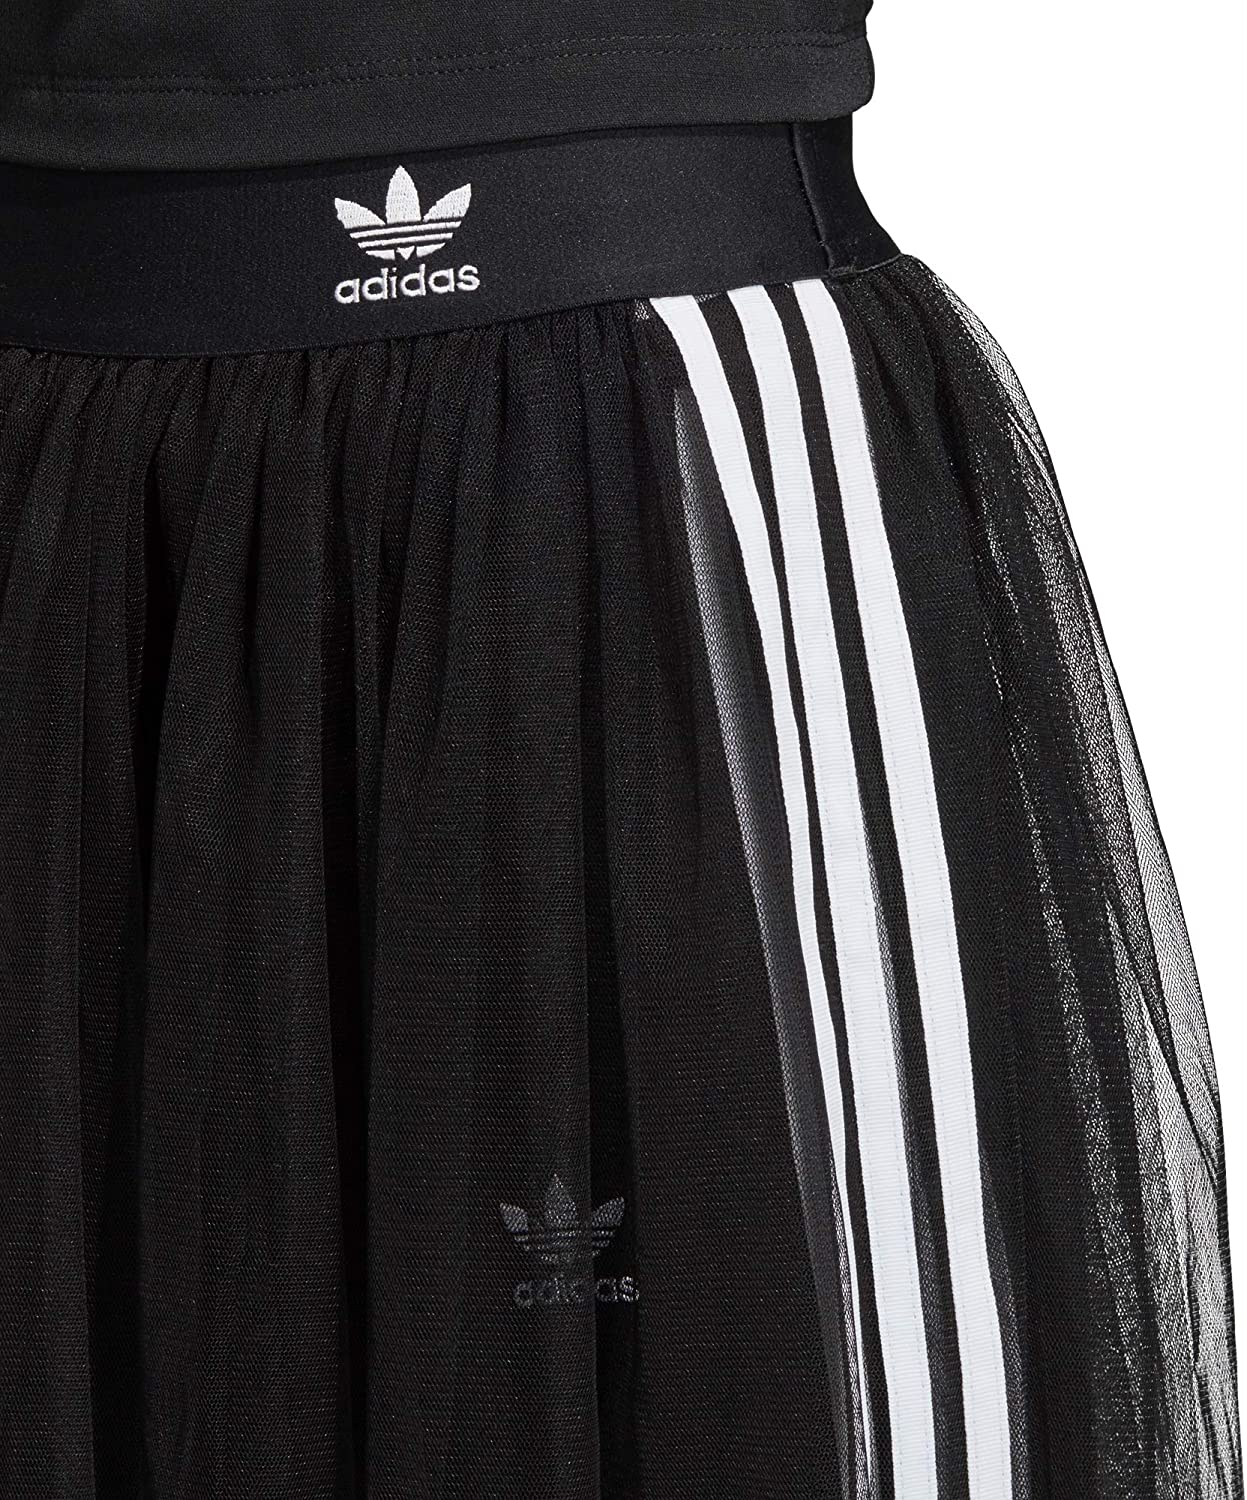 jupe tulle adidas noir Off 62% - www.bashhguidelines.org